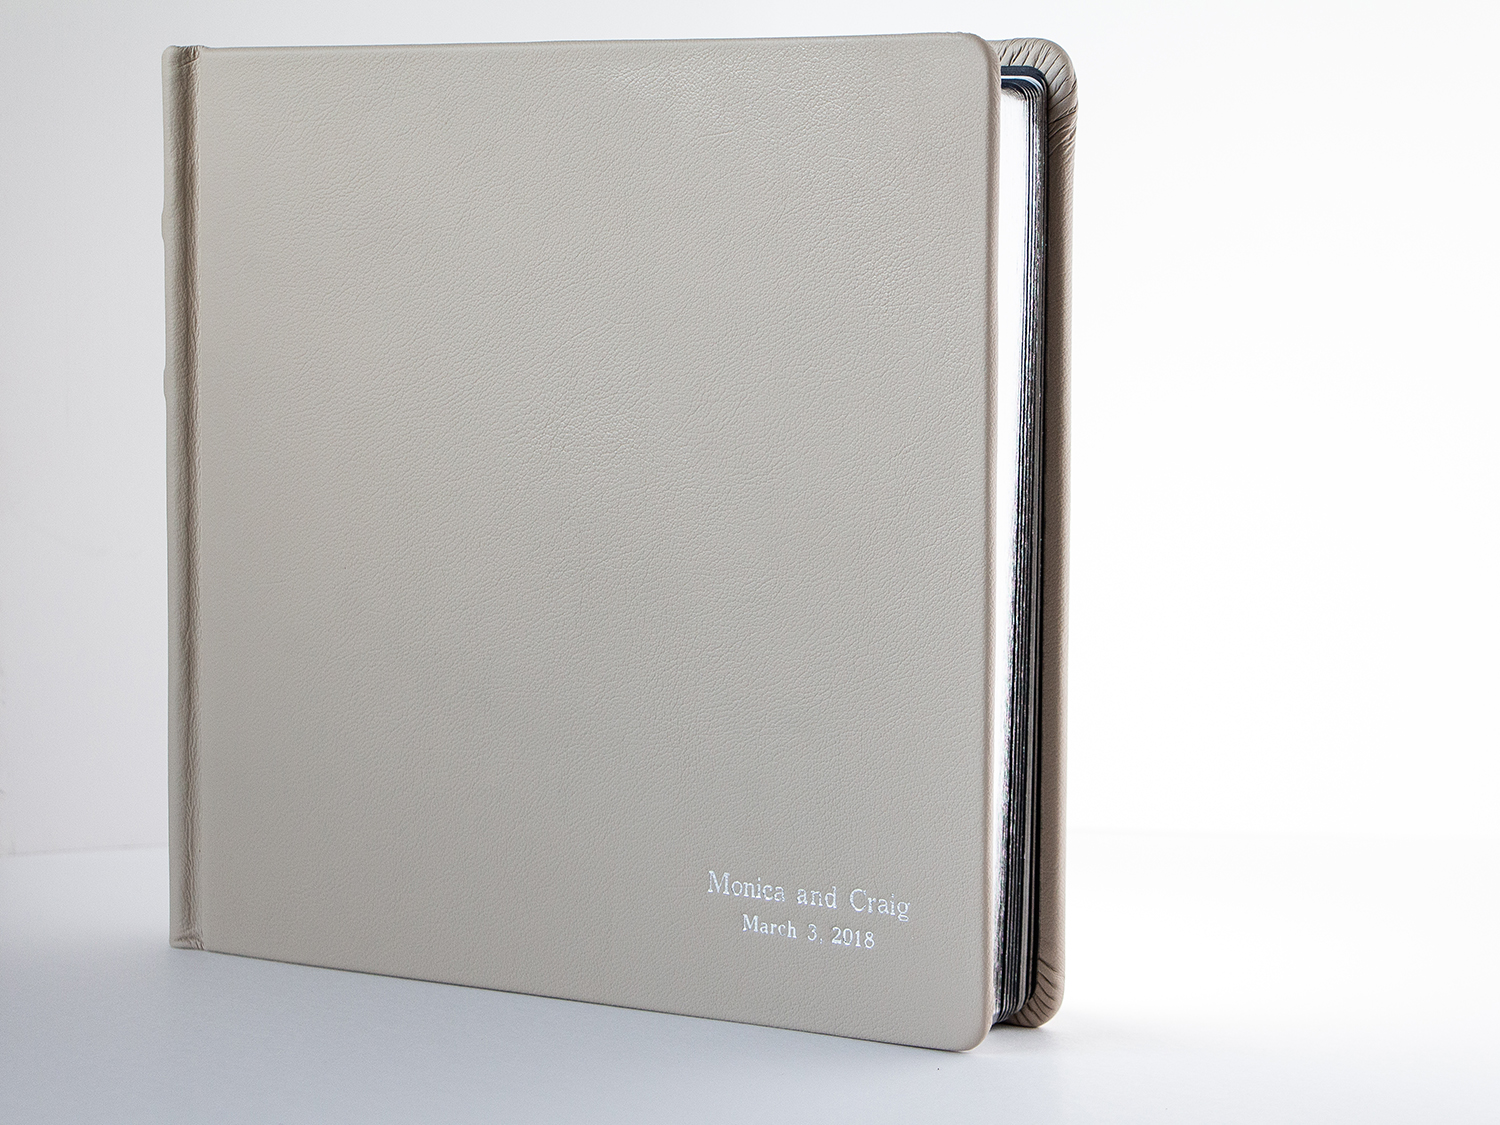 800 Matted Album Traditional Cover Featuring Euro Sand Leather, Rounded Cover Corners, Round Cornered Gilded Pages, And Block Type Font Imprinted In Silver Foil